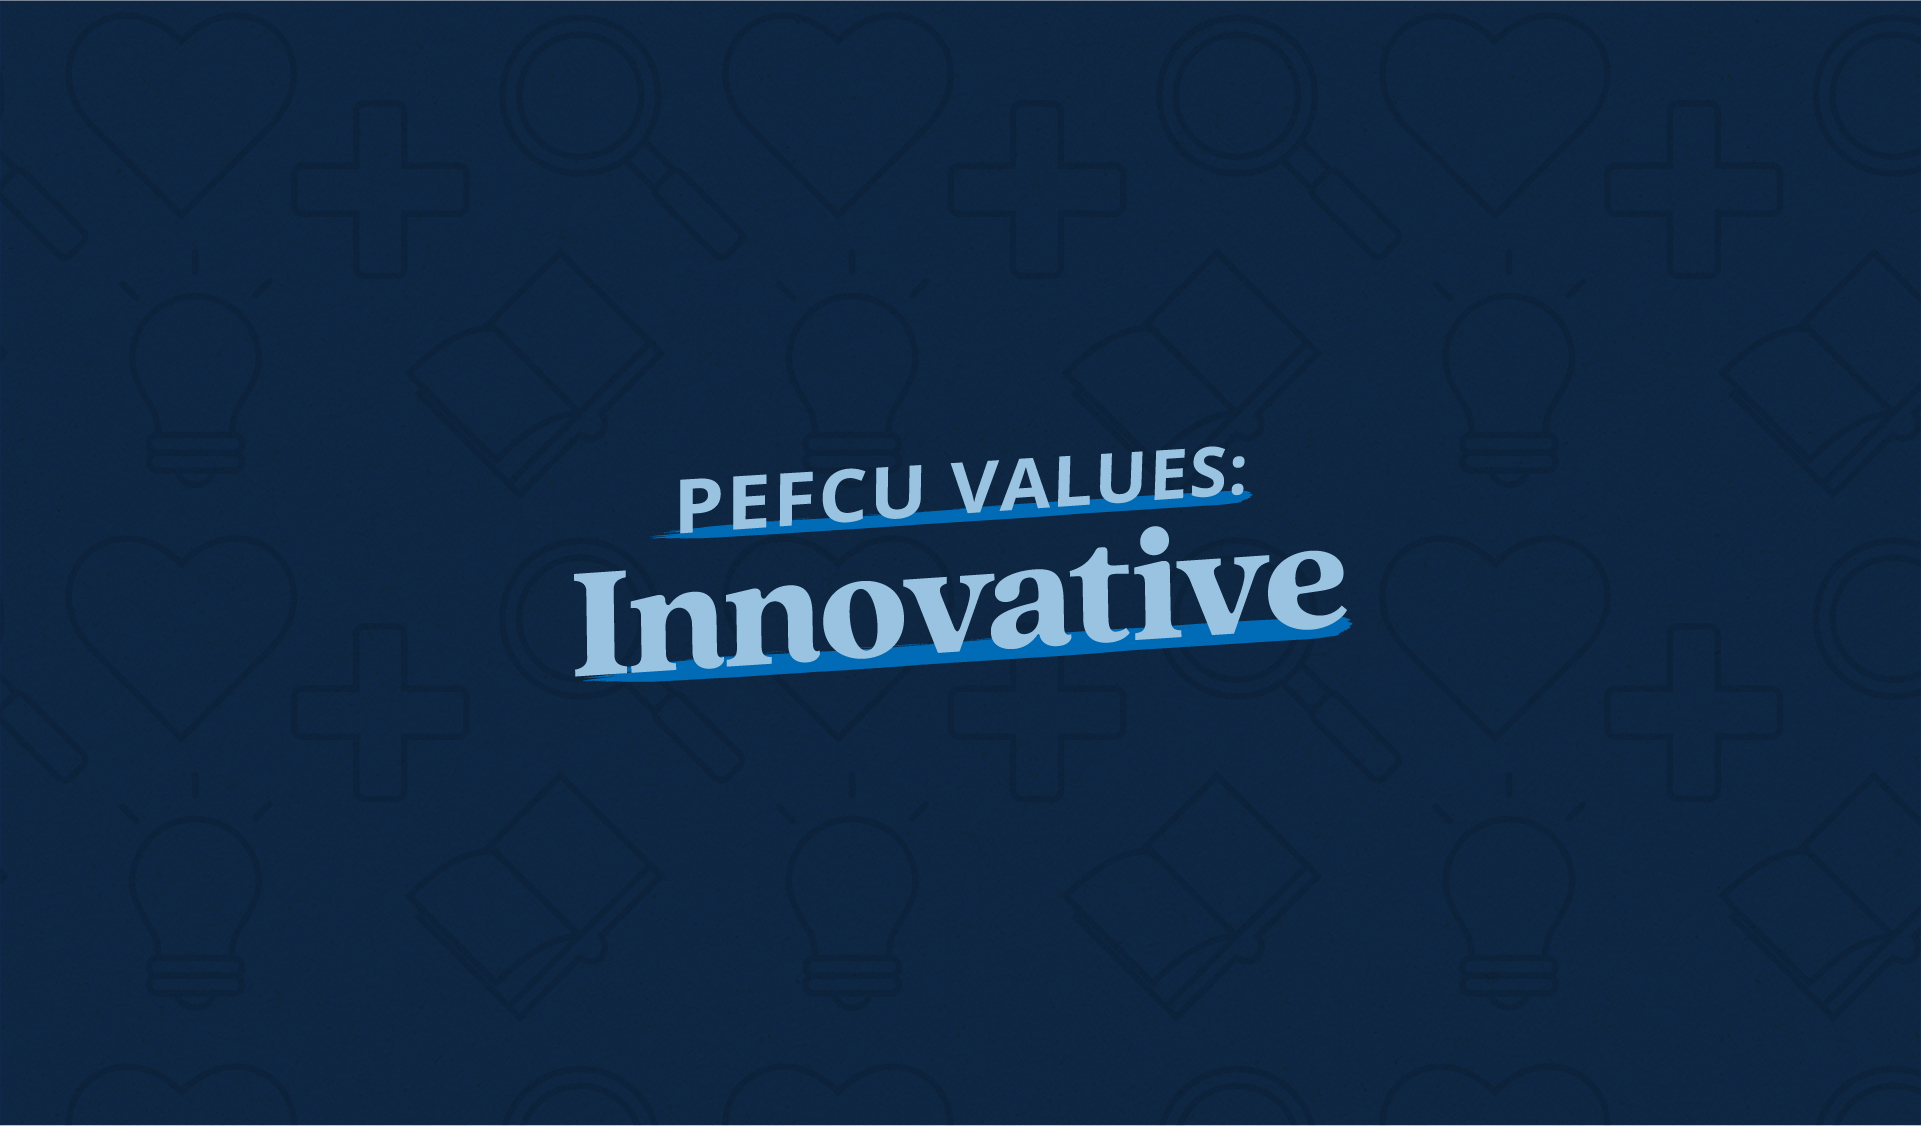 PEFCU Values: Innovative